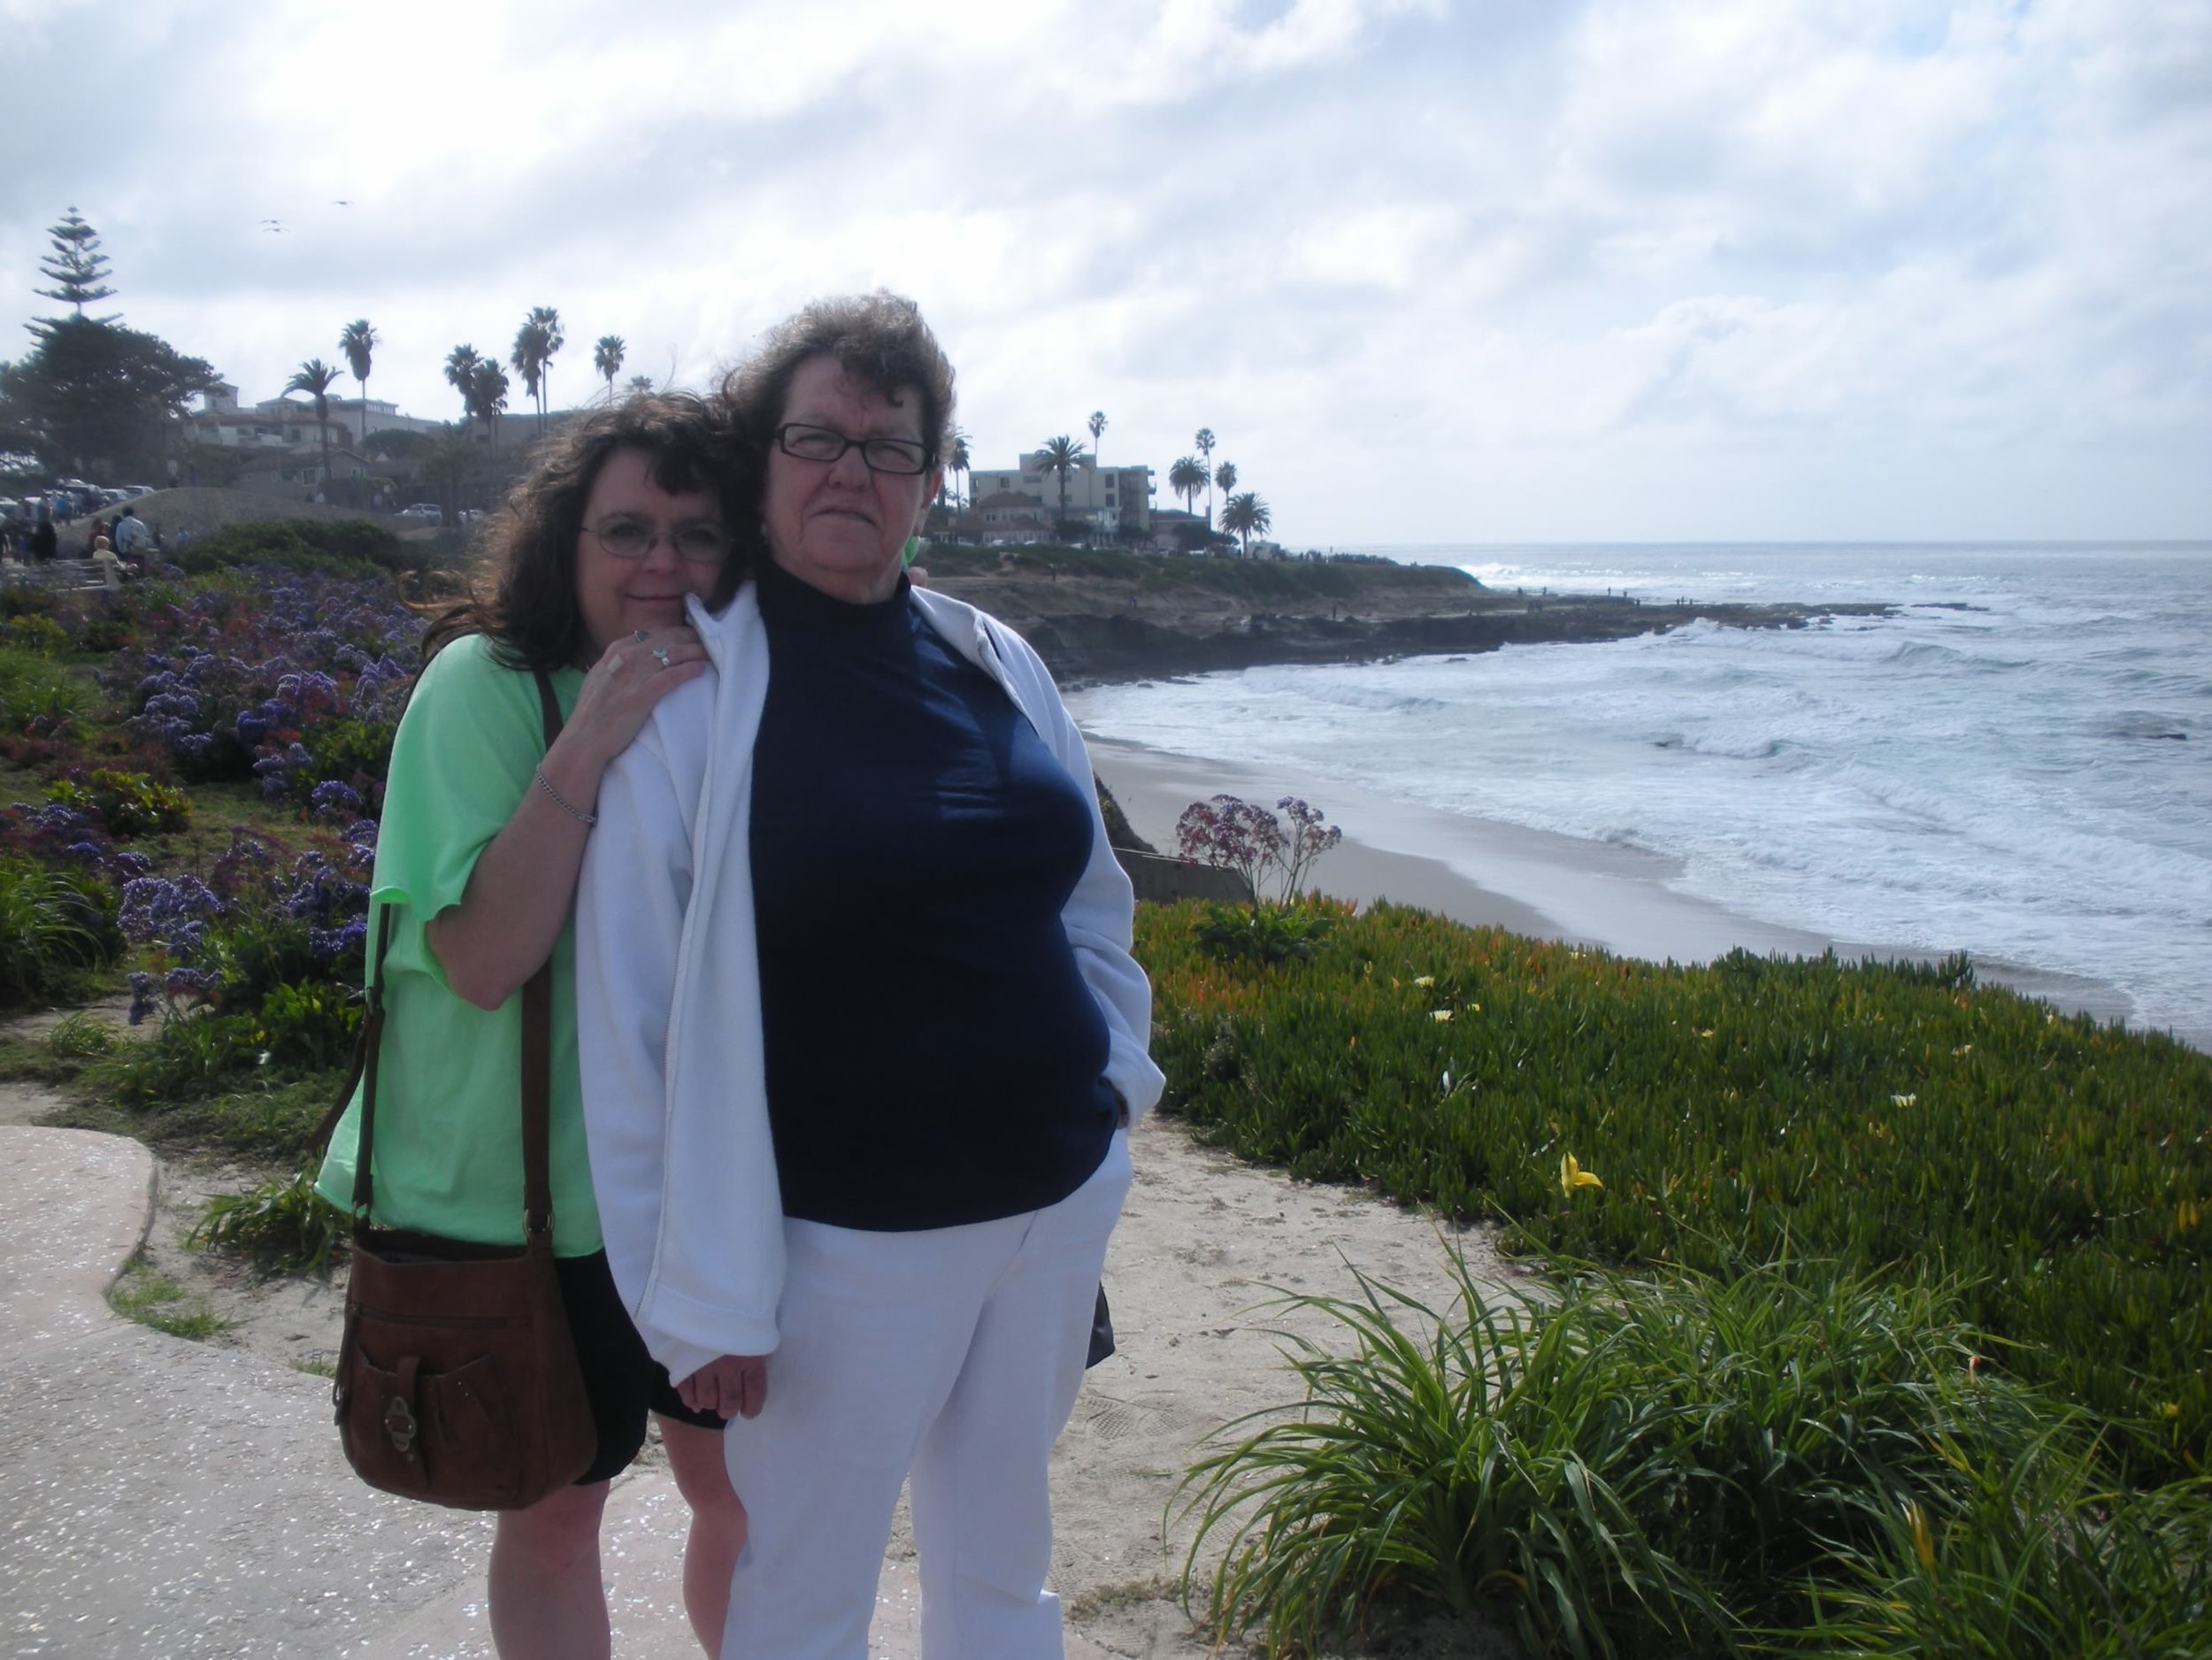 After being diagnosed with cancer, Donna and Judy traveled as often as they could and enjoyed every moment together. Pictured above, Donna and Judy visit California's beaches.